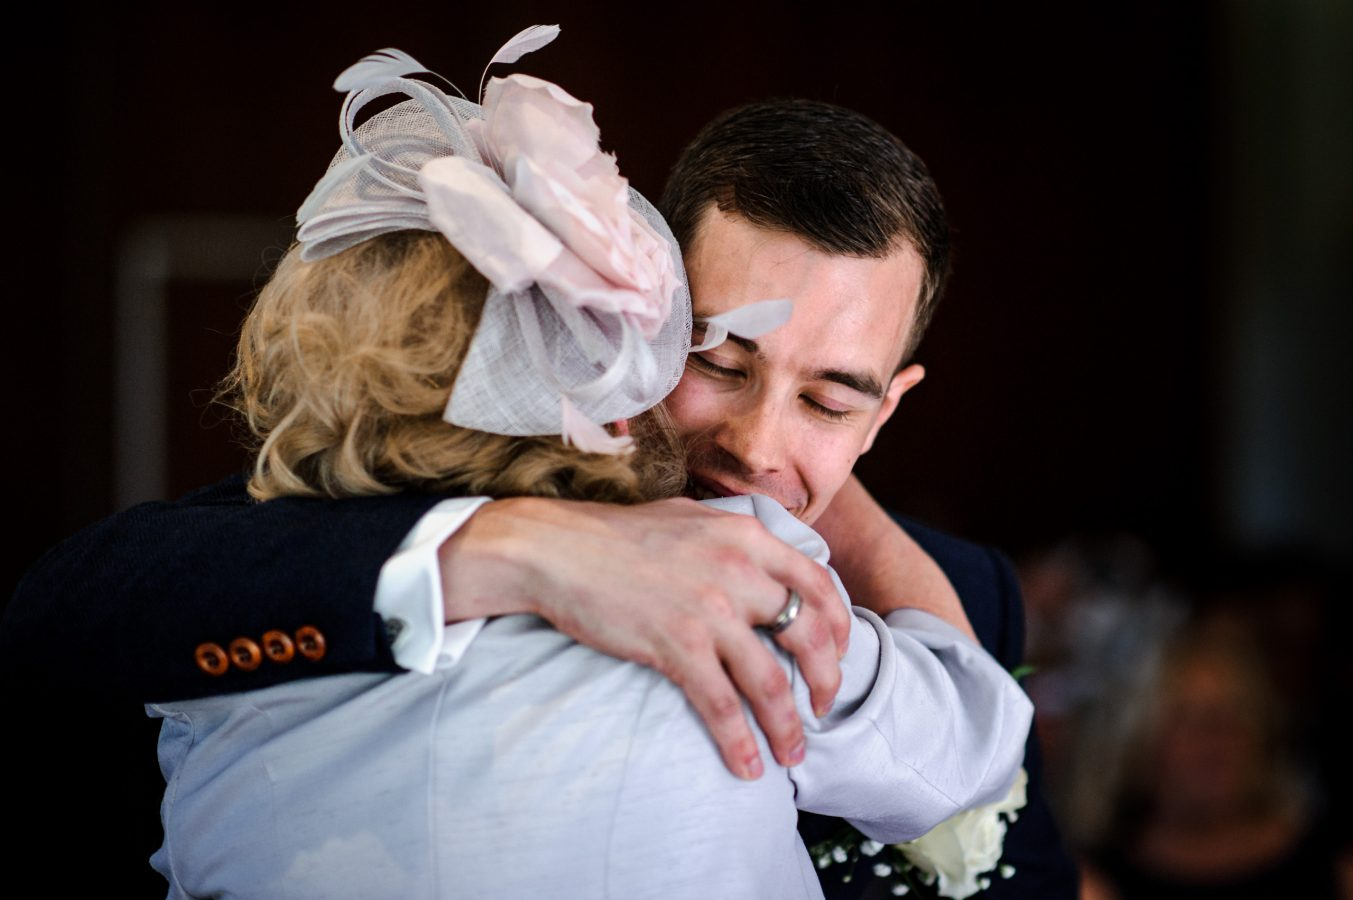 groom-and-mother-emotional-hug-dunkenhalgh-hotel